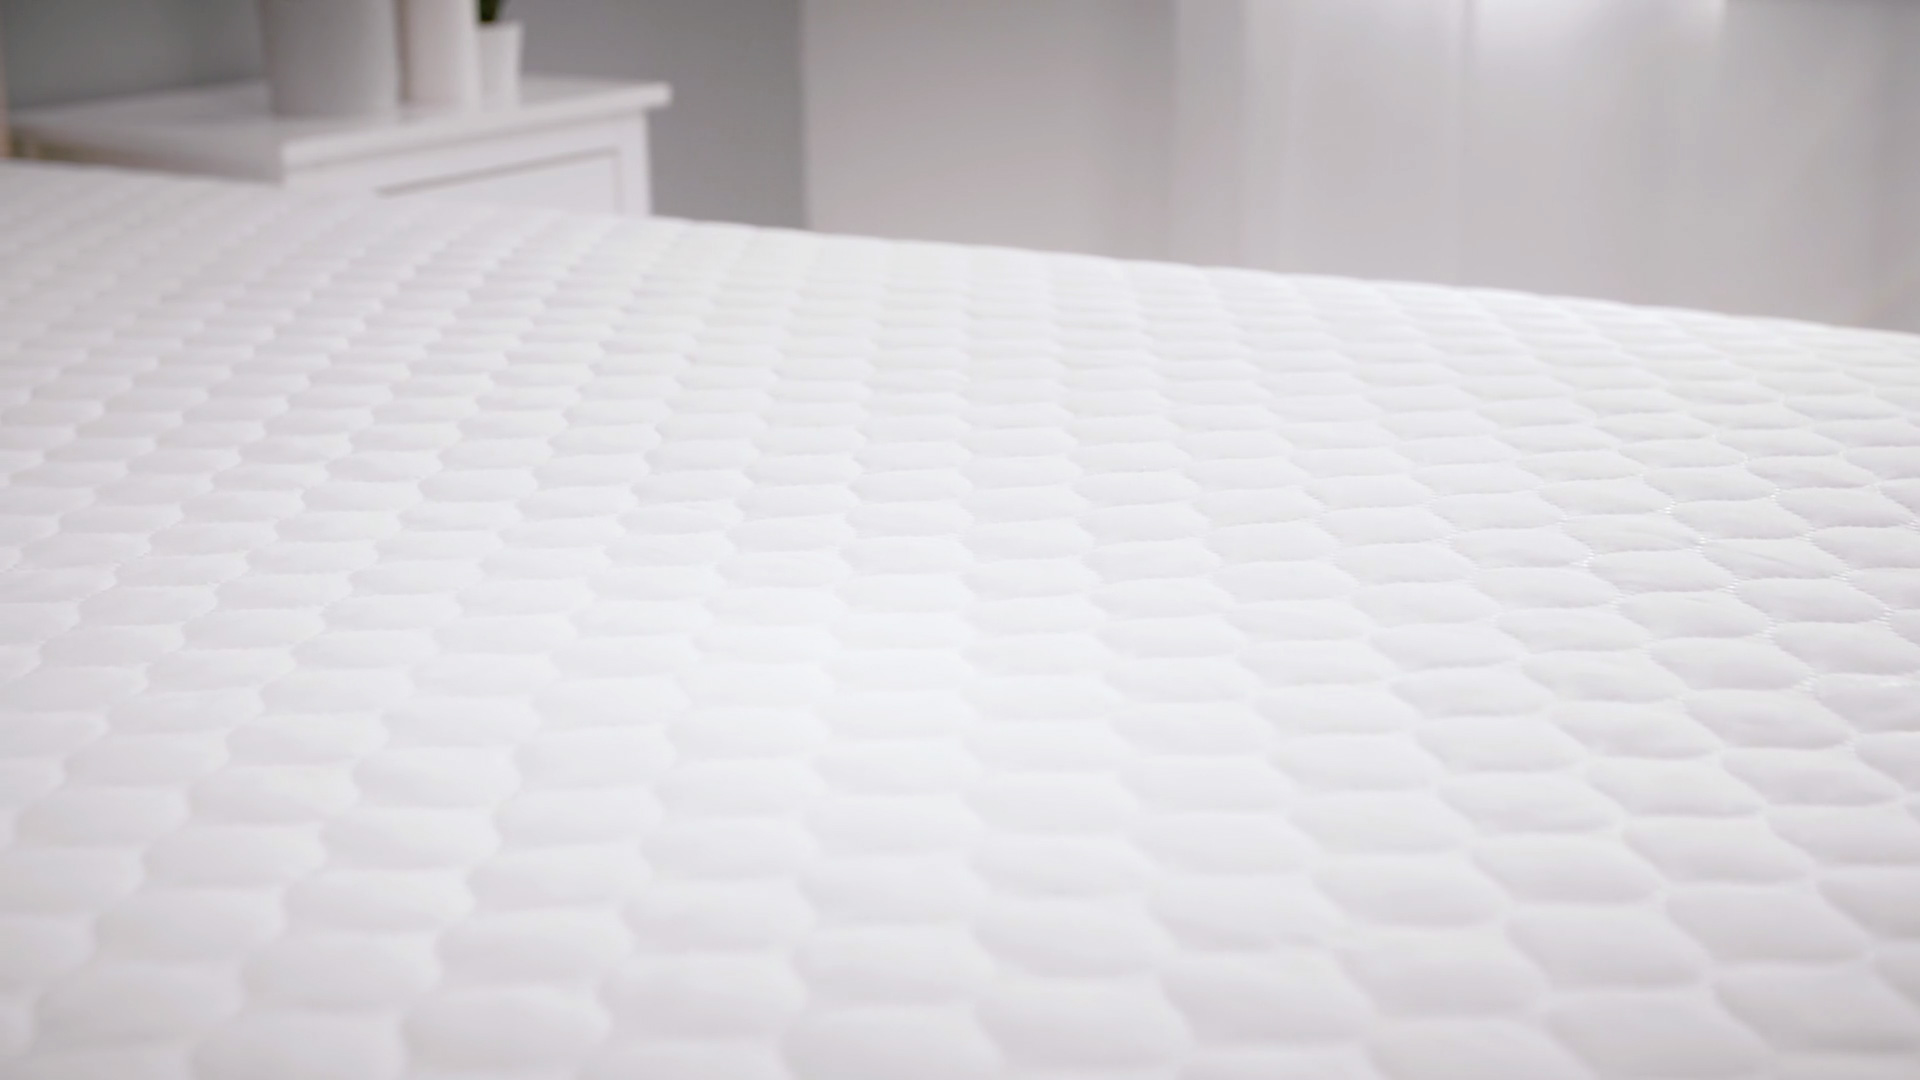 Slumberdown Clean Guard Mattress Protector King White Home Kitchen Cot Bedding